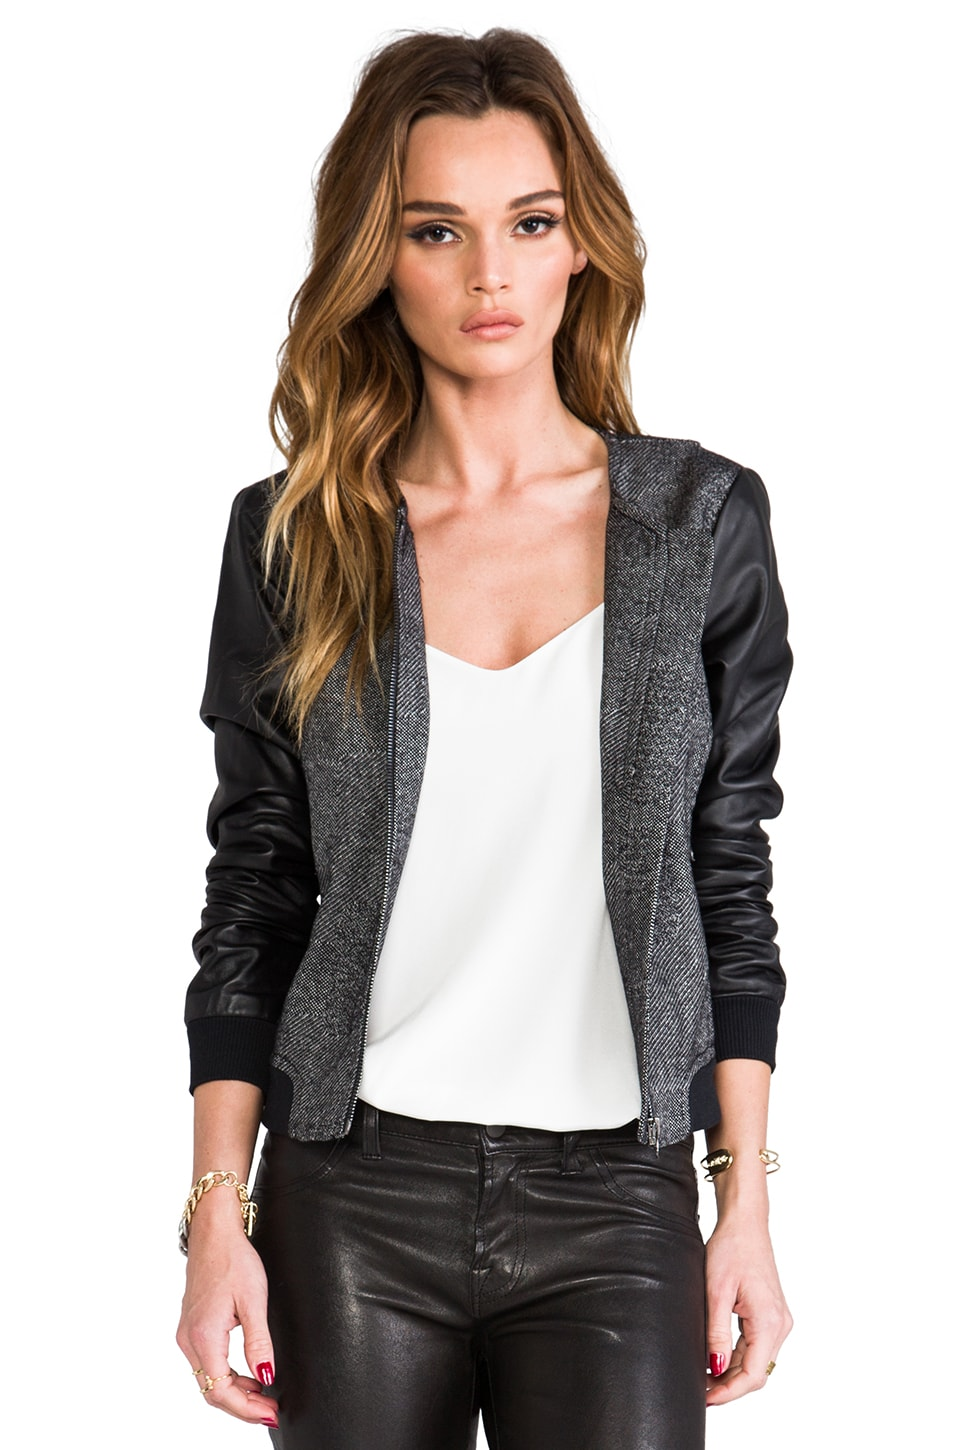 Trina Turk Patchwork Weave Slugger Jacket in Black/Leather